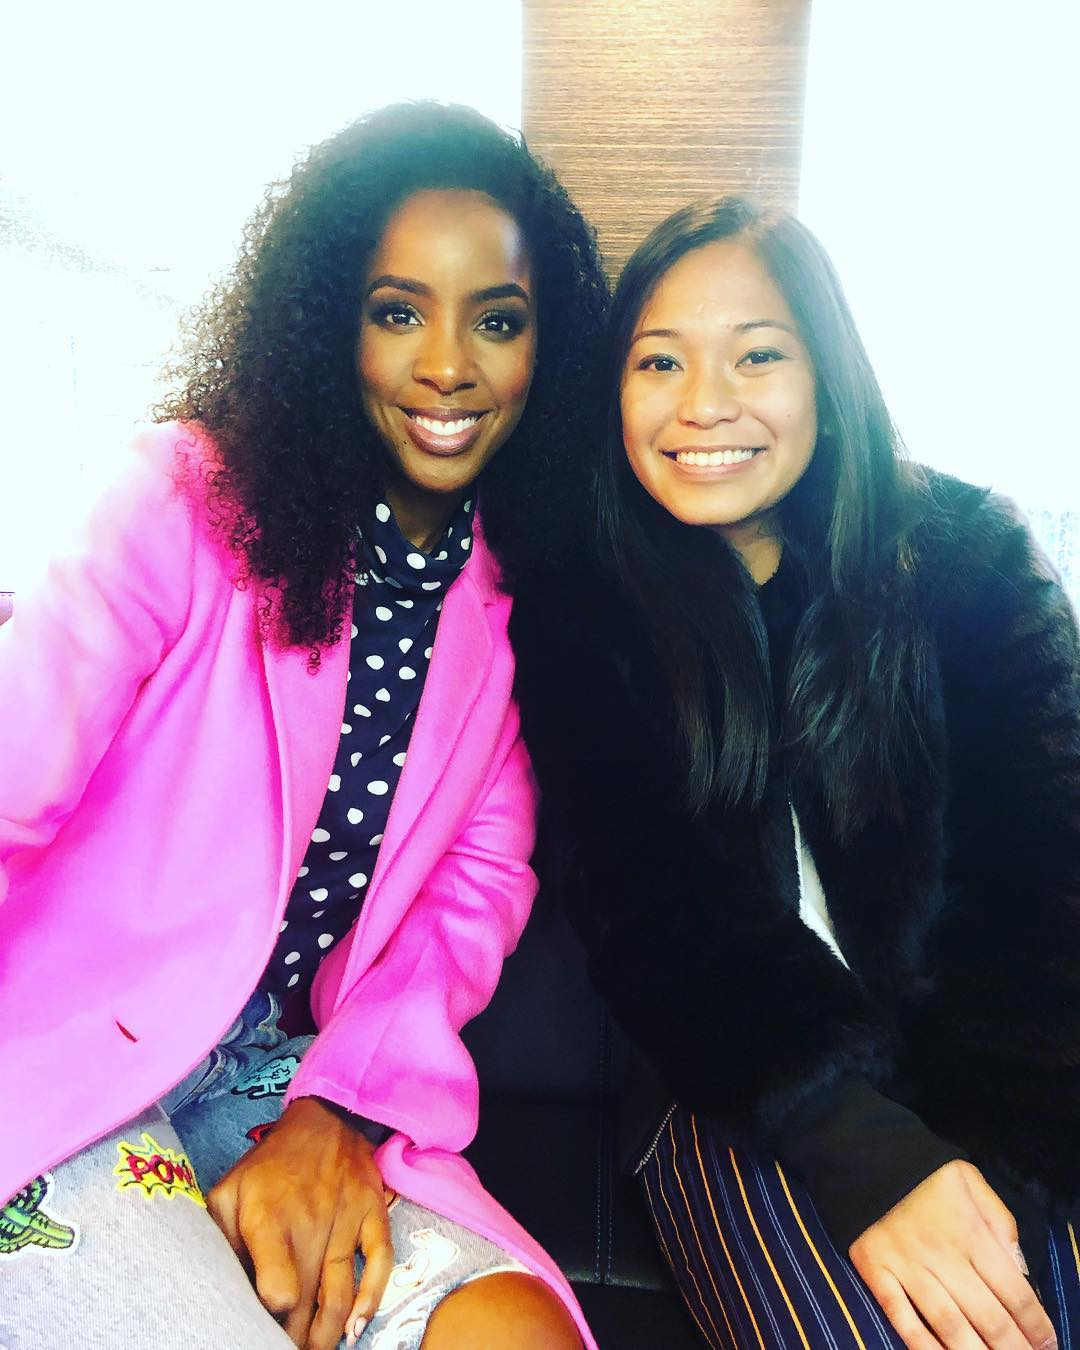 KELLY ROWLAND - What Kelly Rowland Is Doing To Make Sure Black Girls Have Safe Spaces To Wear Their Natural 4C Hair